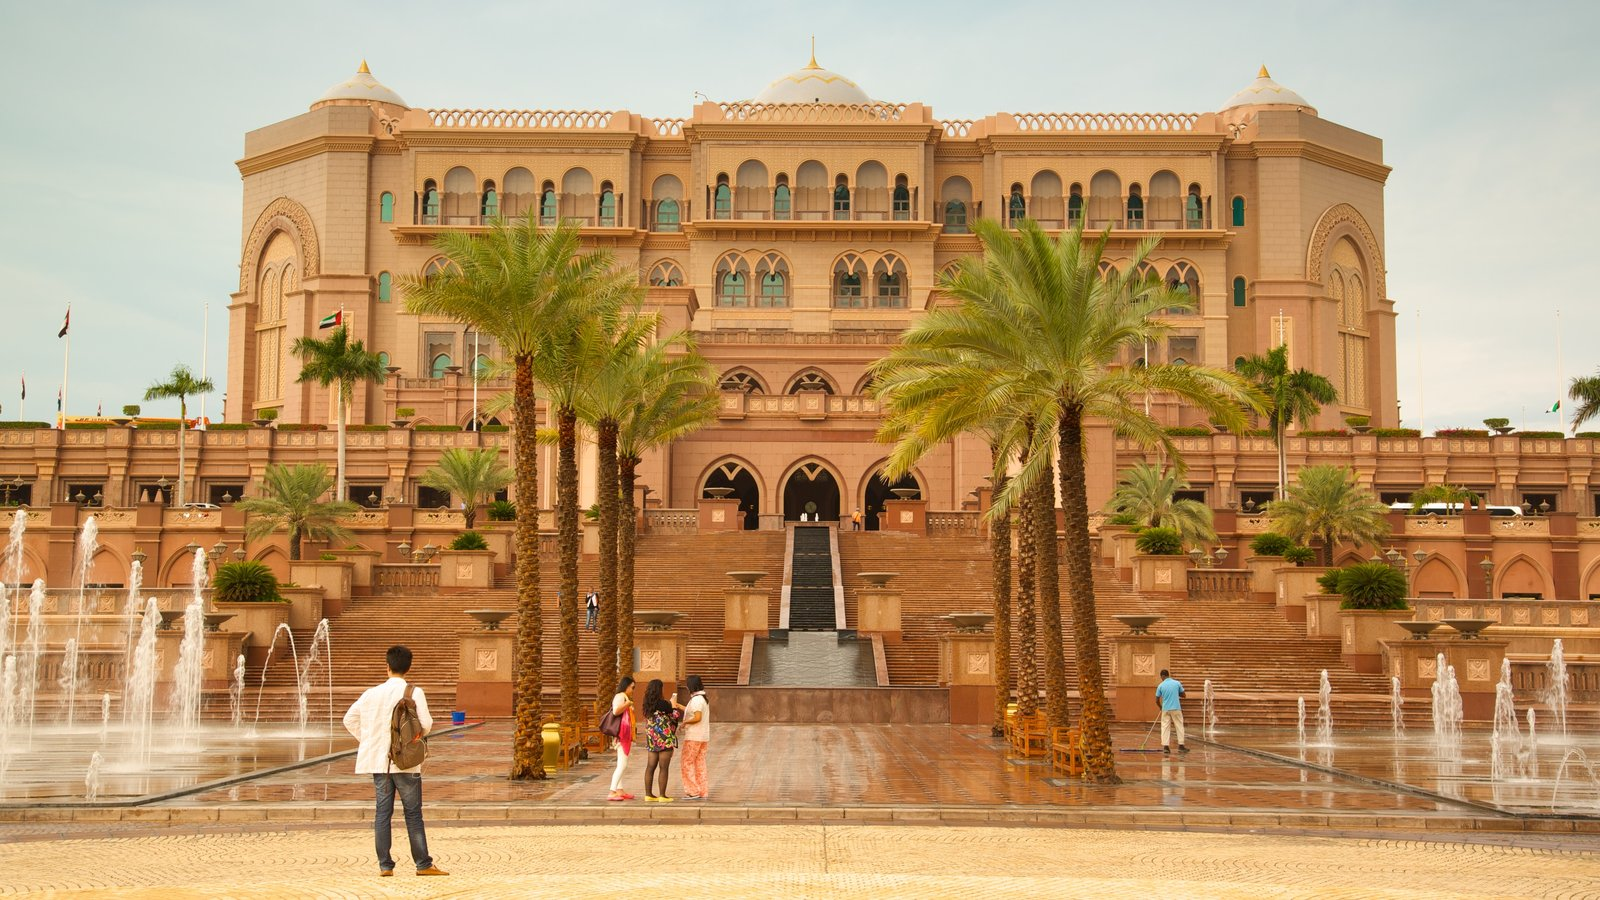 Abu Dhabi Emirate which includes a fountain, heritage elements and heritage architecture